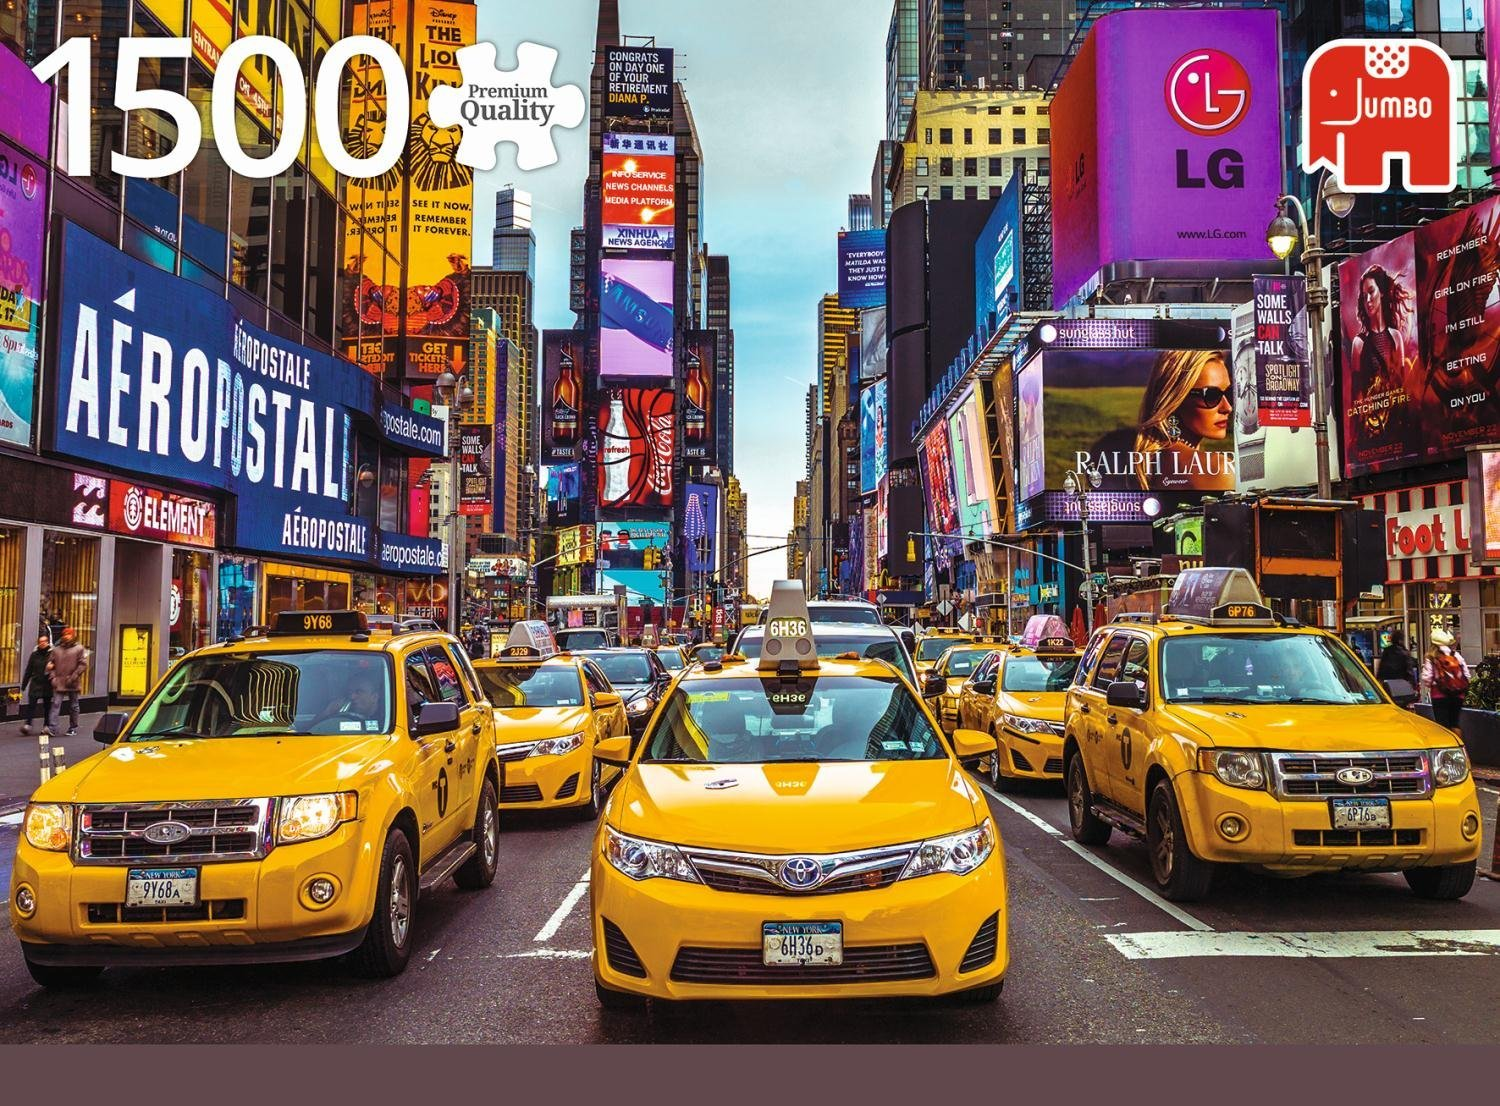 puzzle new york taxi jumbo 18527 1500 pieces jigsaw. Black Bedroom Furniture Sets. Home Design Ideas